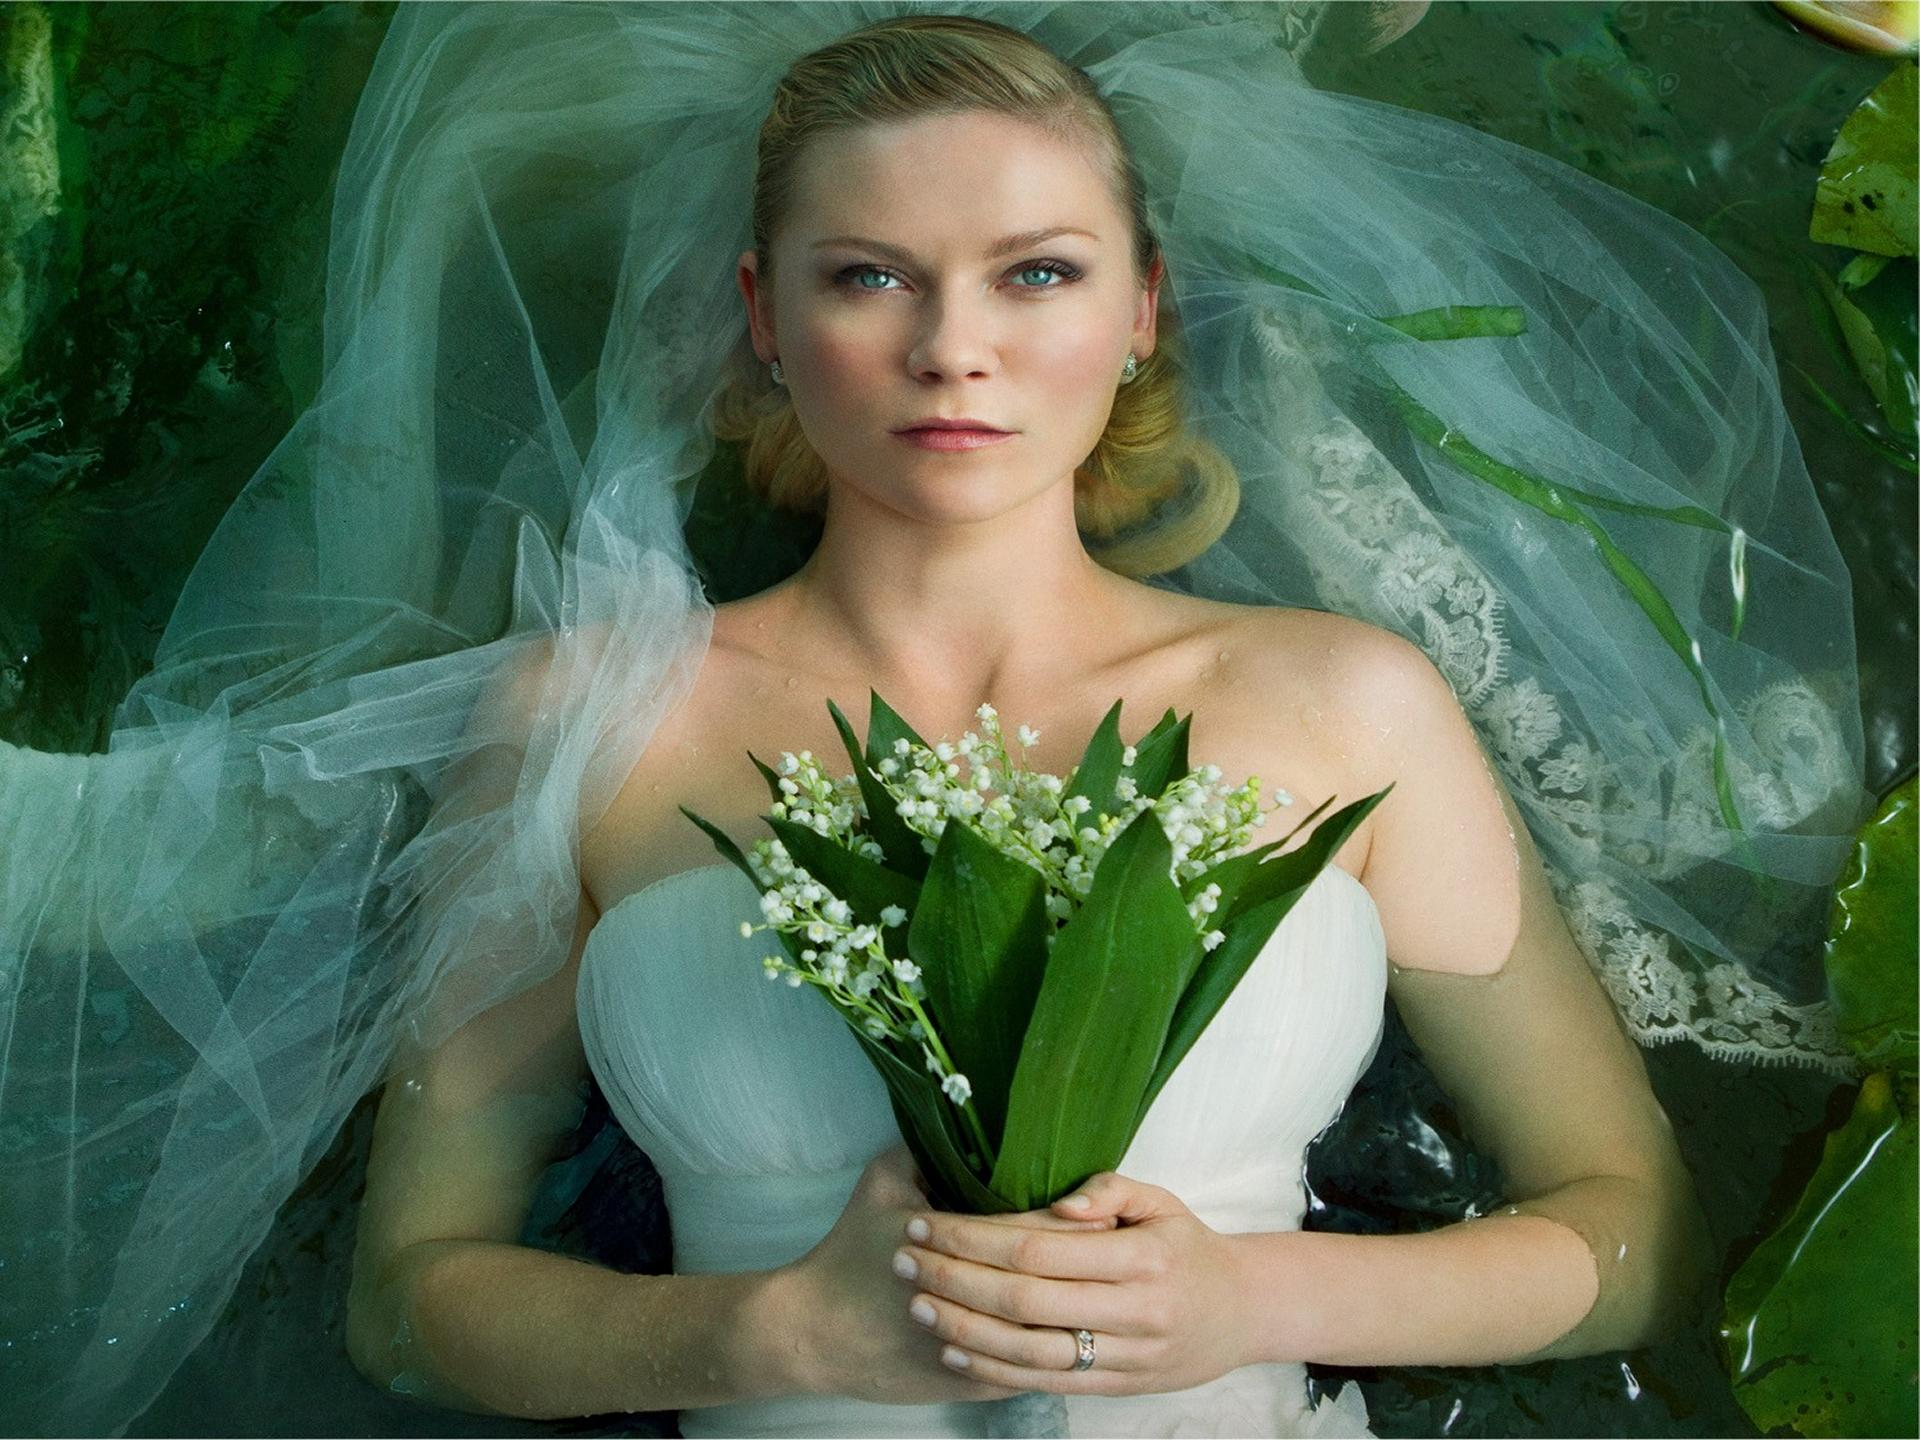 melancholia 1920x1440: Cranky Critic® Movie Wallpaper Downloads